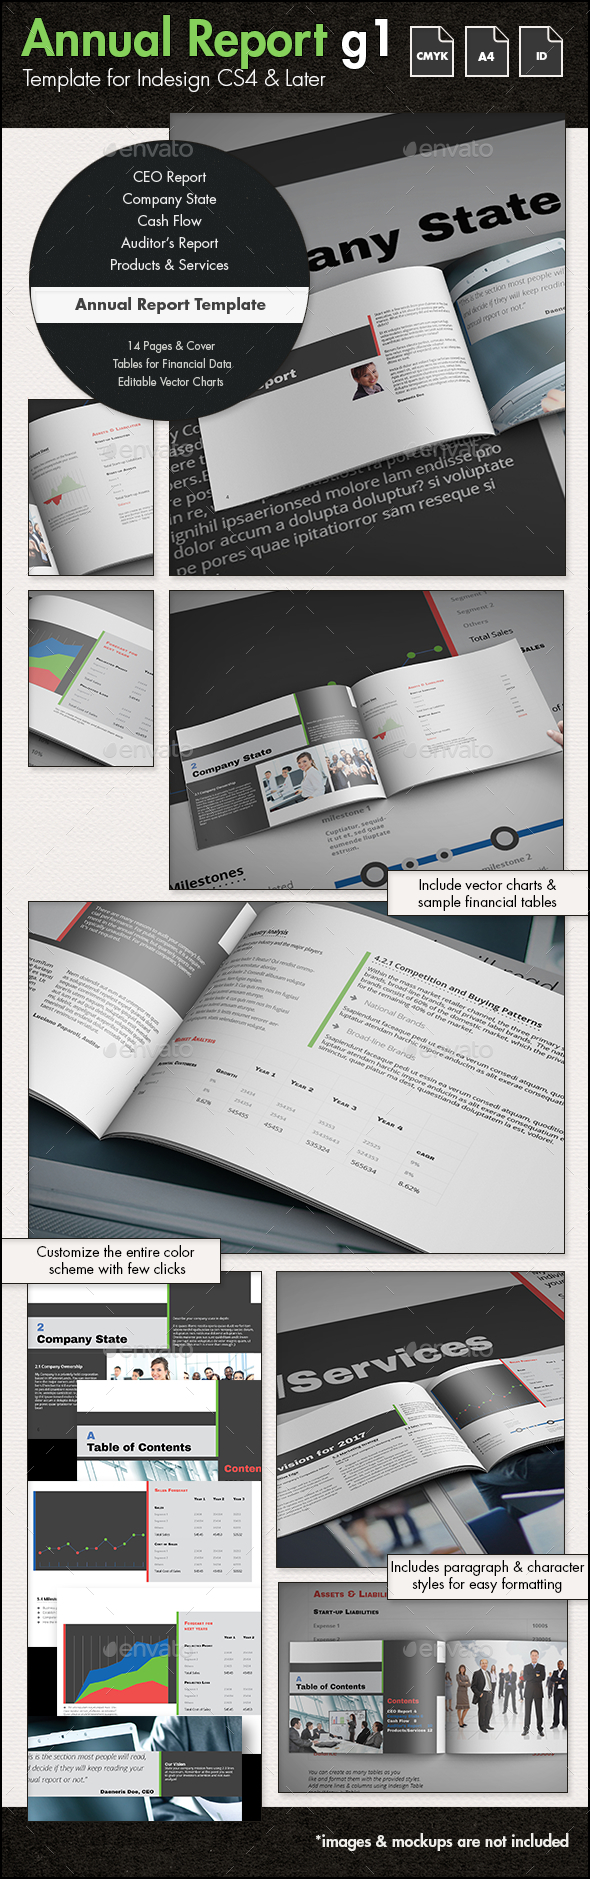 Annual Report Template g1 - A4 Landscape - Informational Brochures